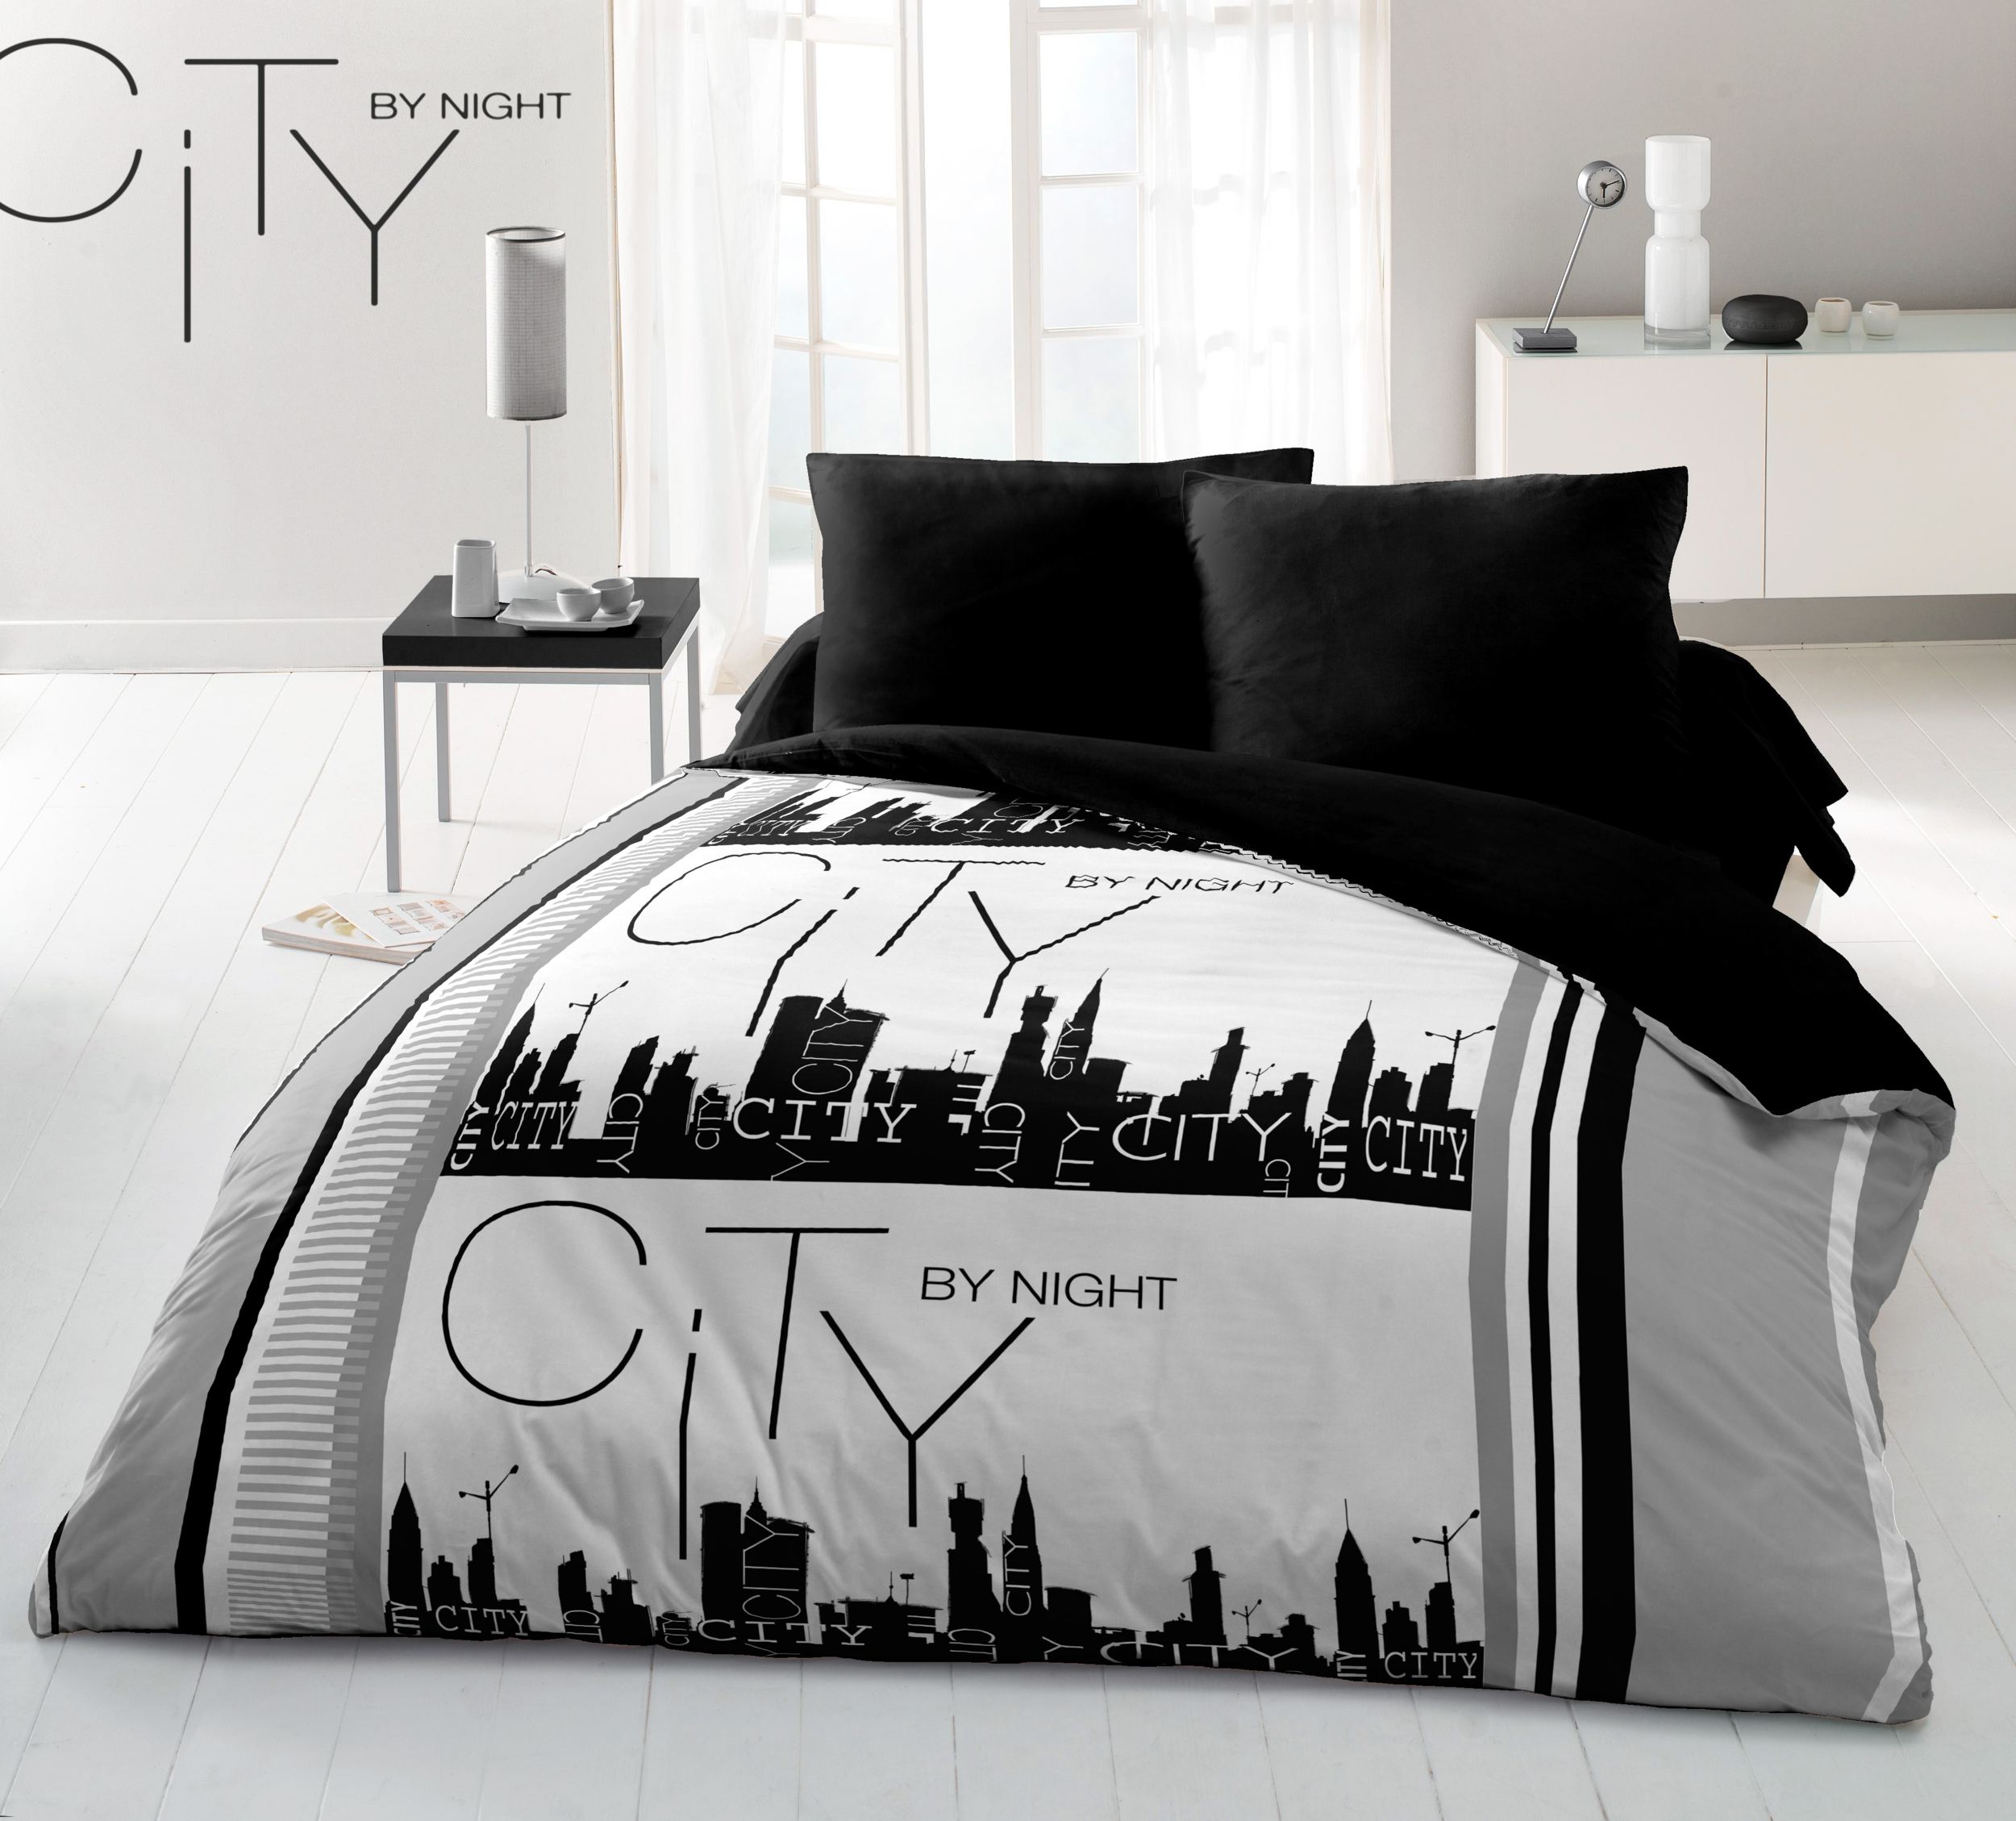 Housse de couette 100% coton 240x220 city by night